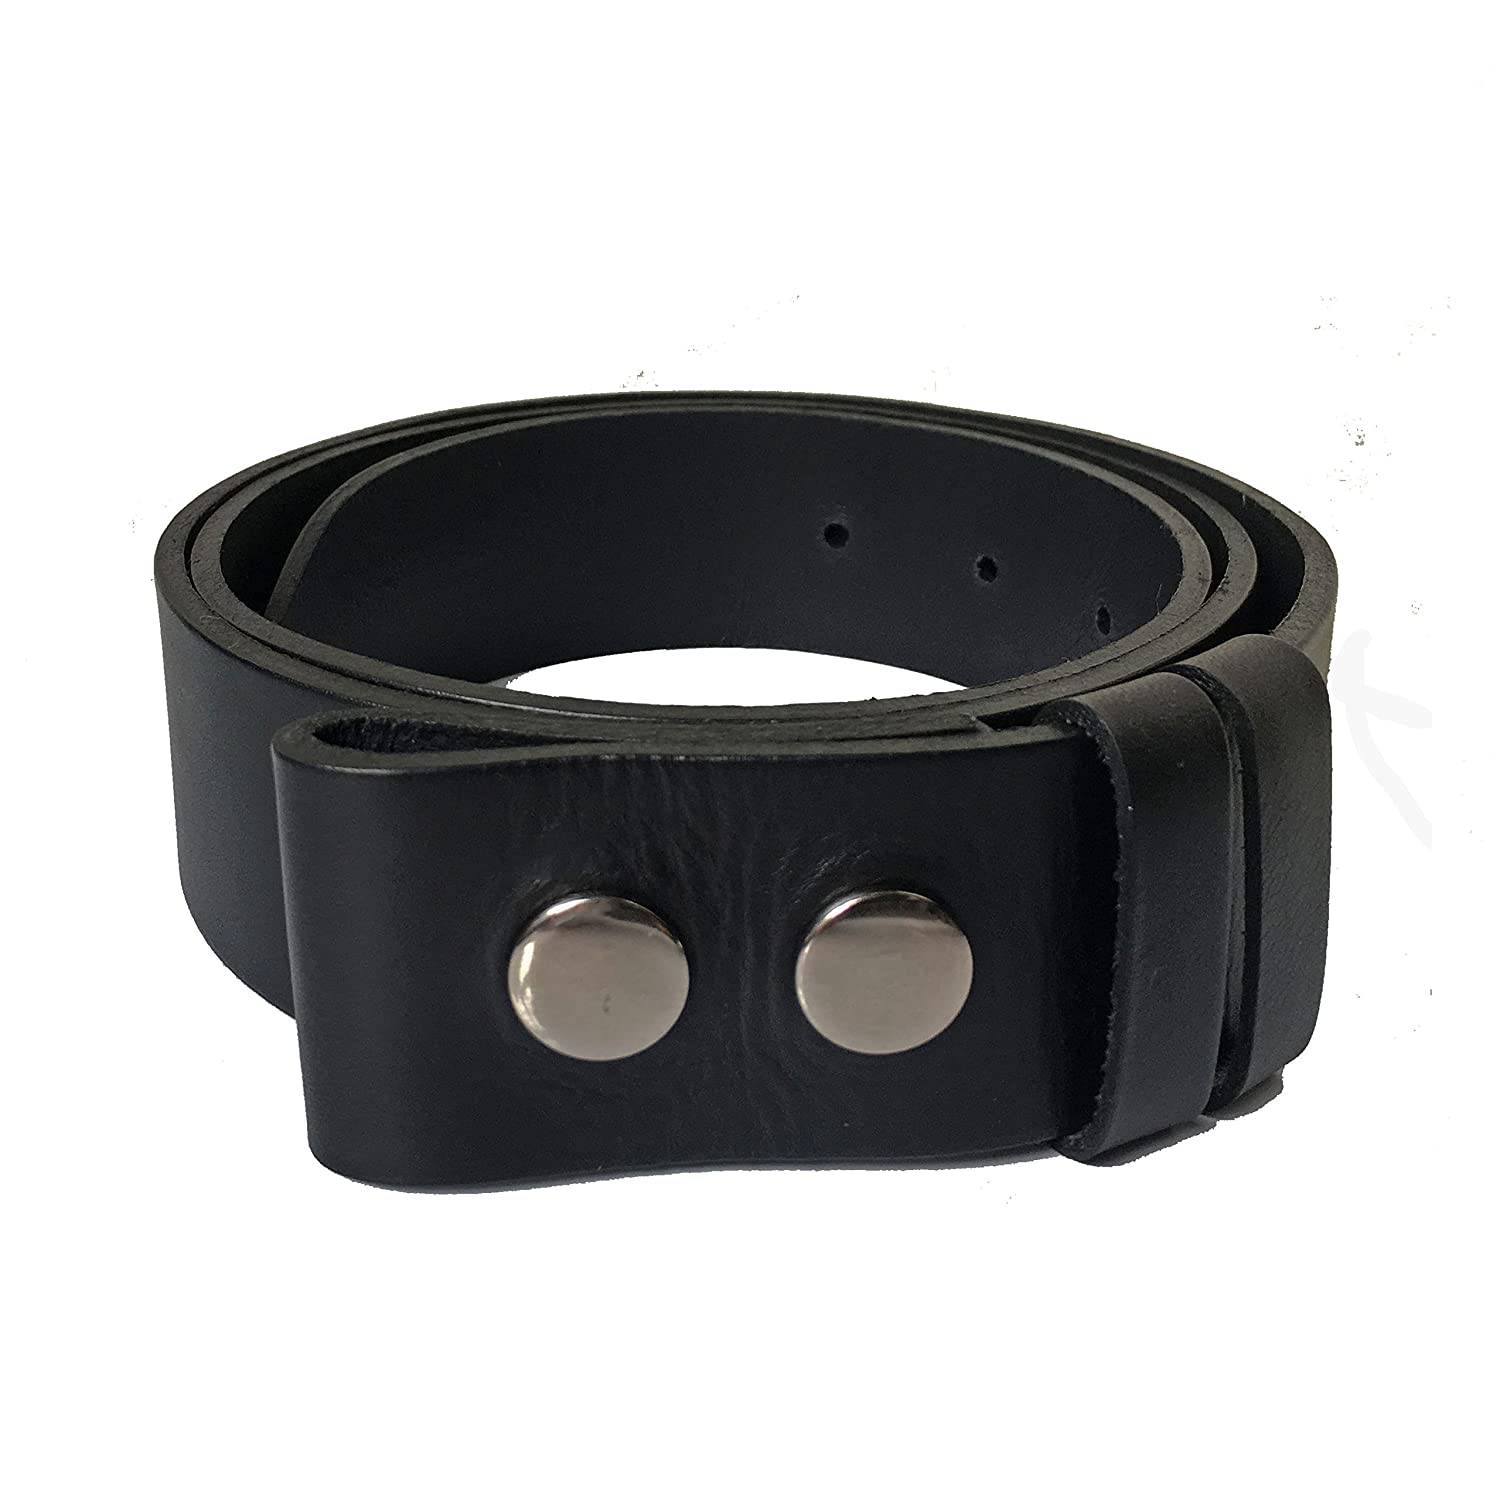 Leather Belt Strap Black -1' 1/2 - Handmade in UK - Snap on Strap - Black Belt - Leather Strap - Removable Buckle - custom belt straps in all sizes